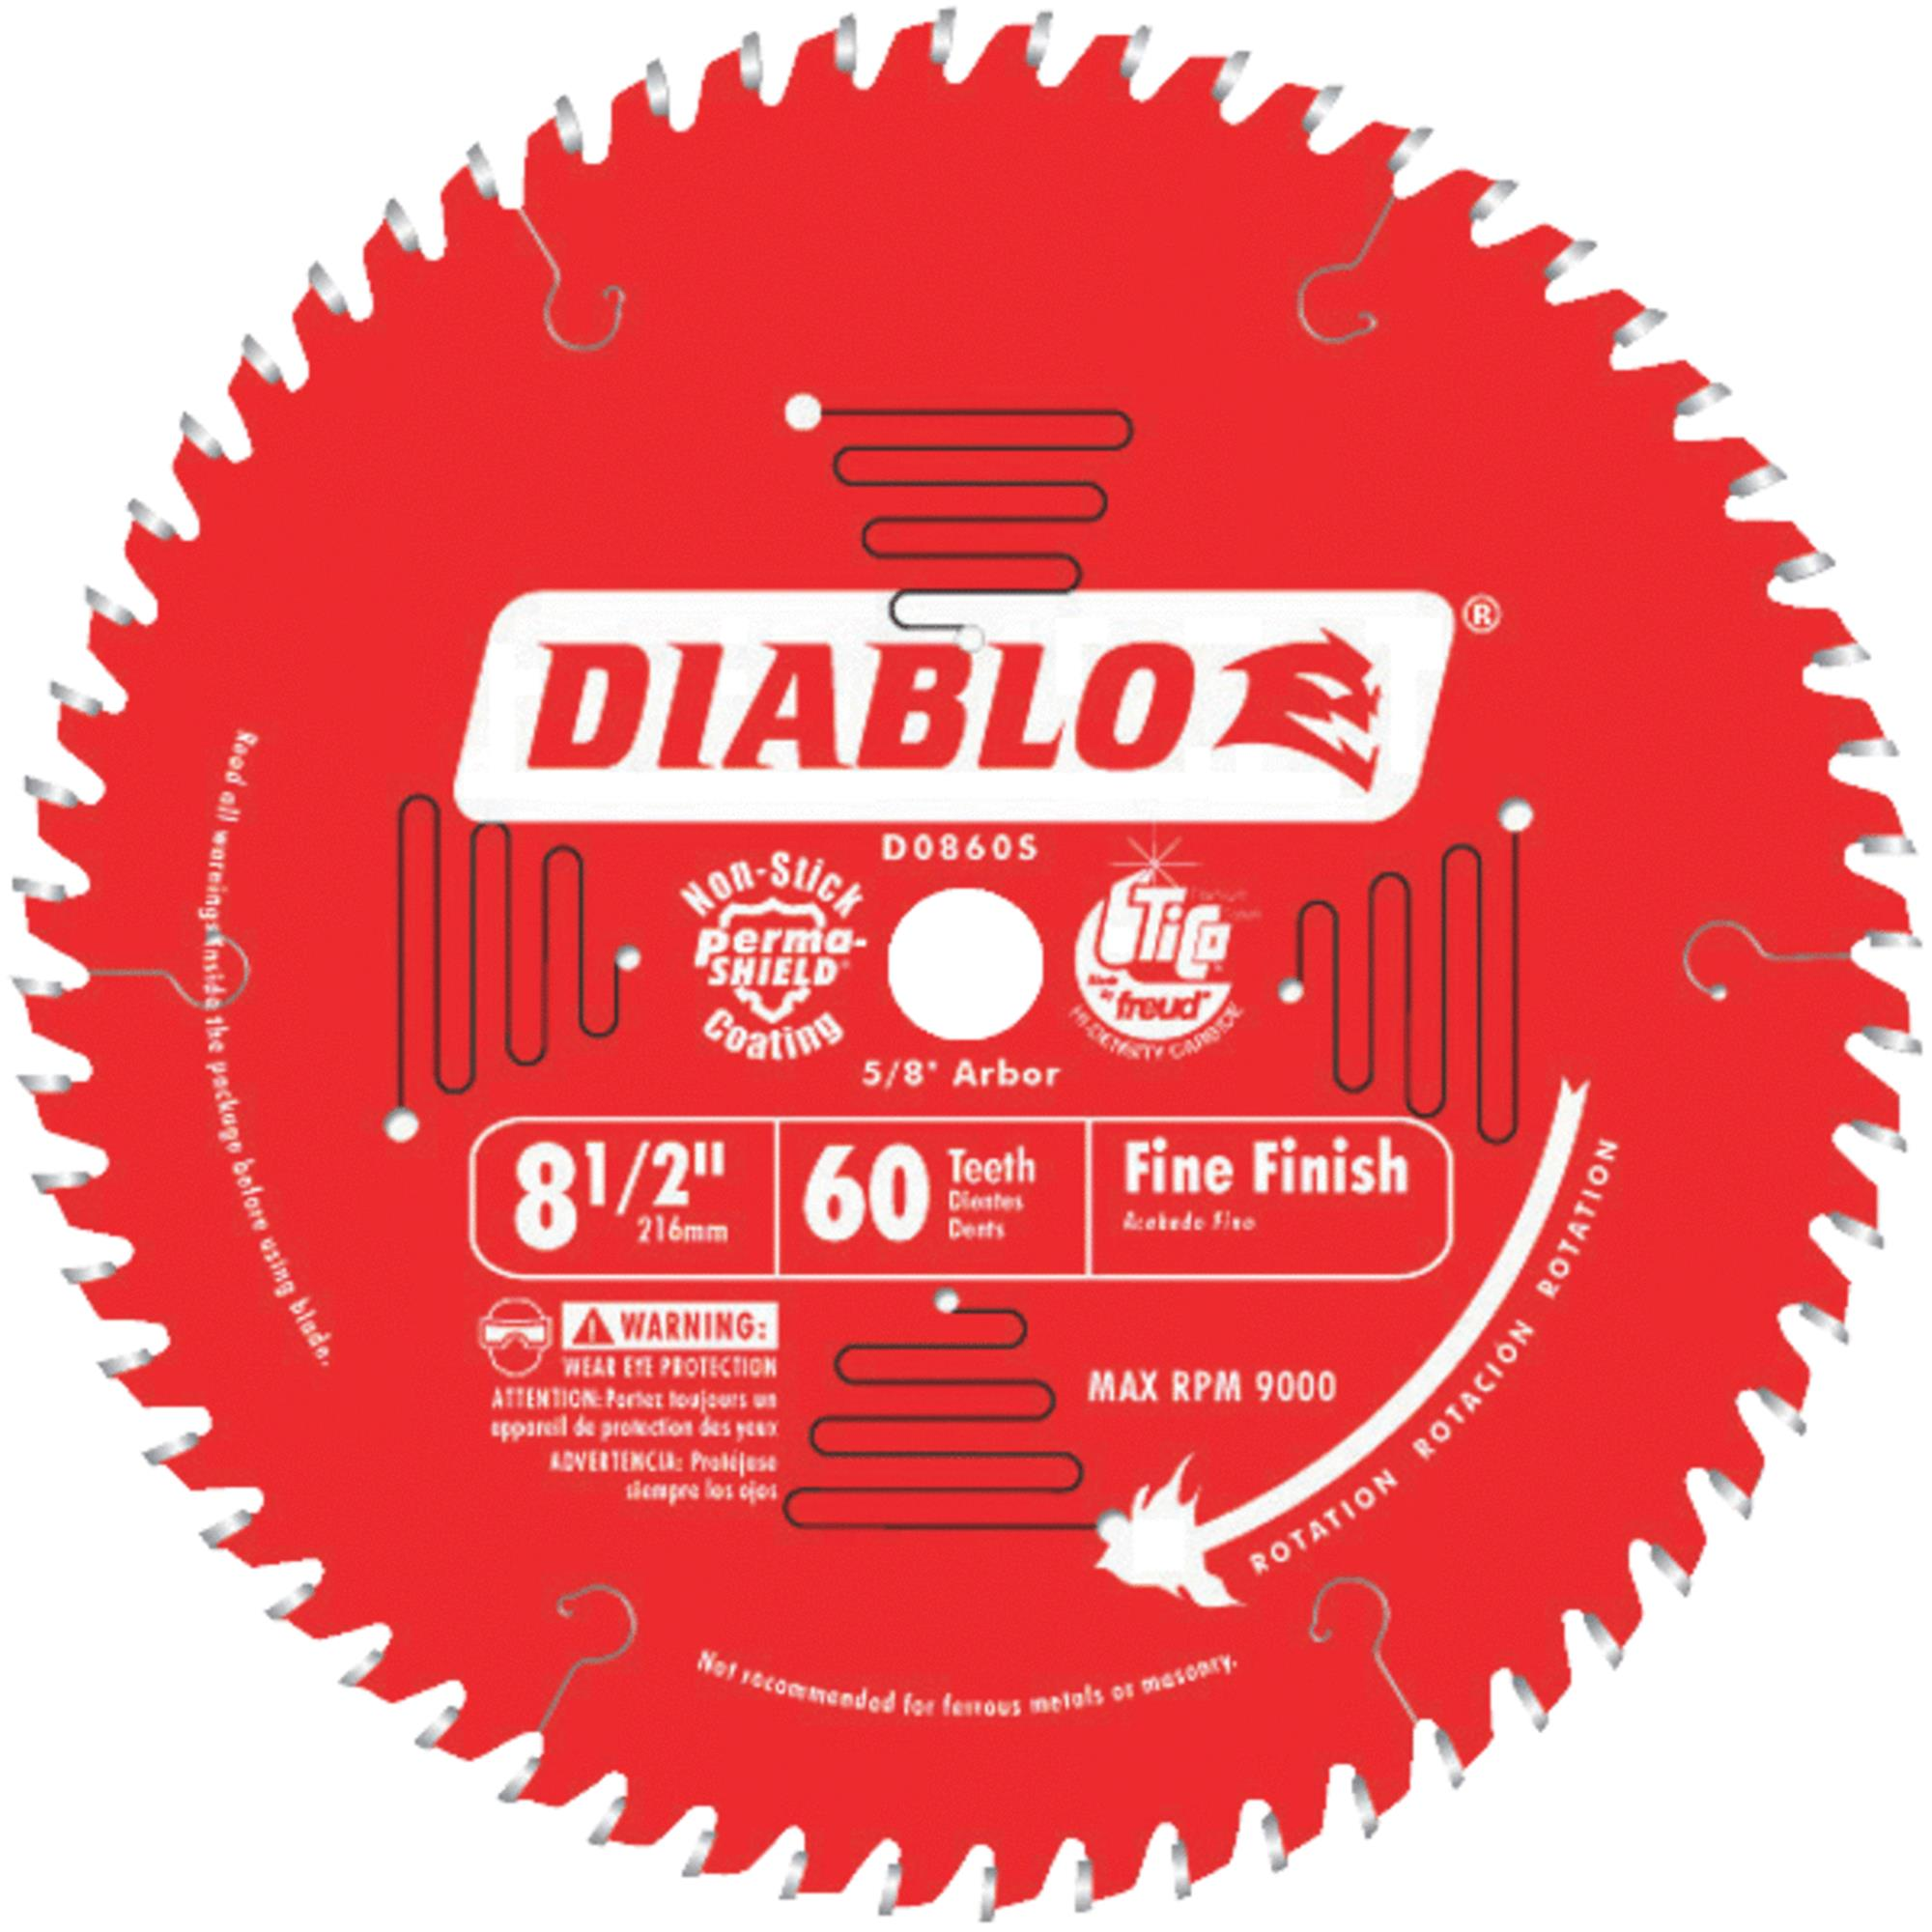 "Diablo D0860S 8-1/2"" 60T Diablo Fine Finish Work Miter/Slide Miter Saw Bl"